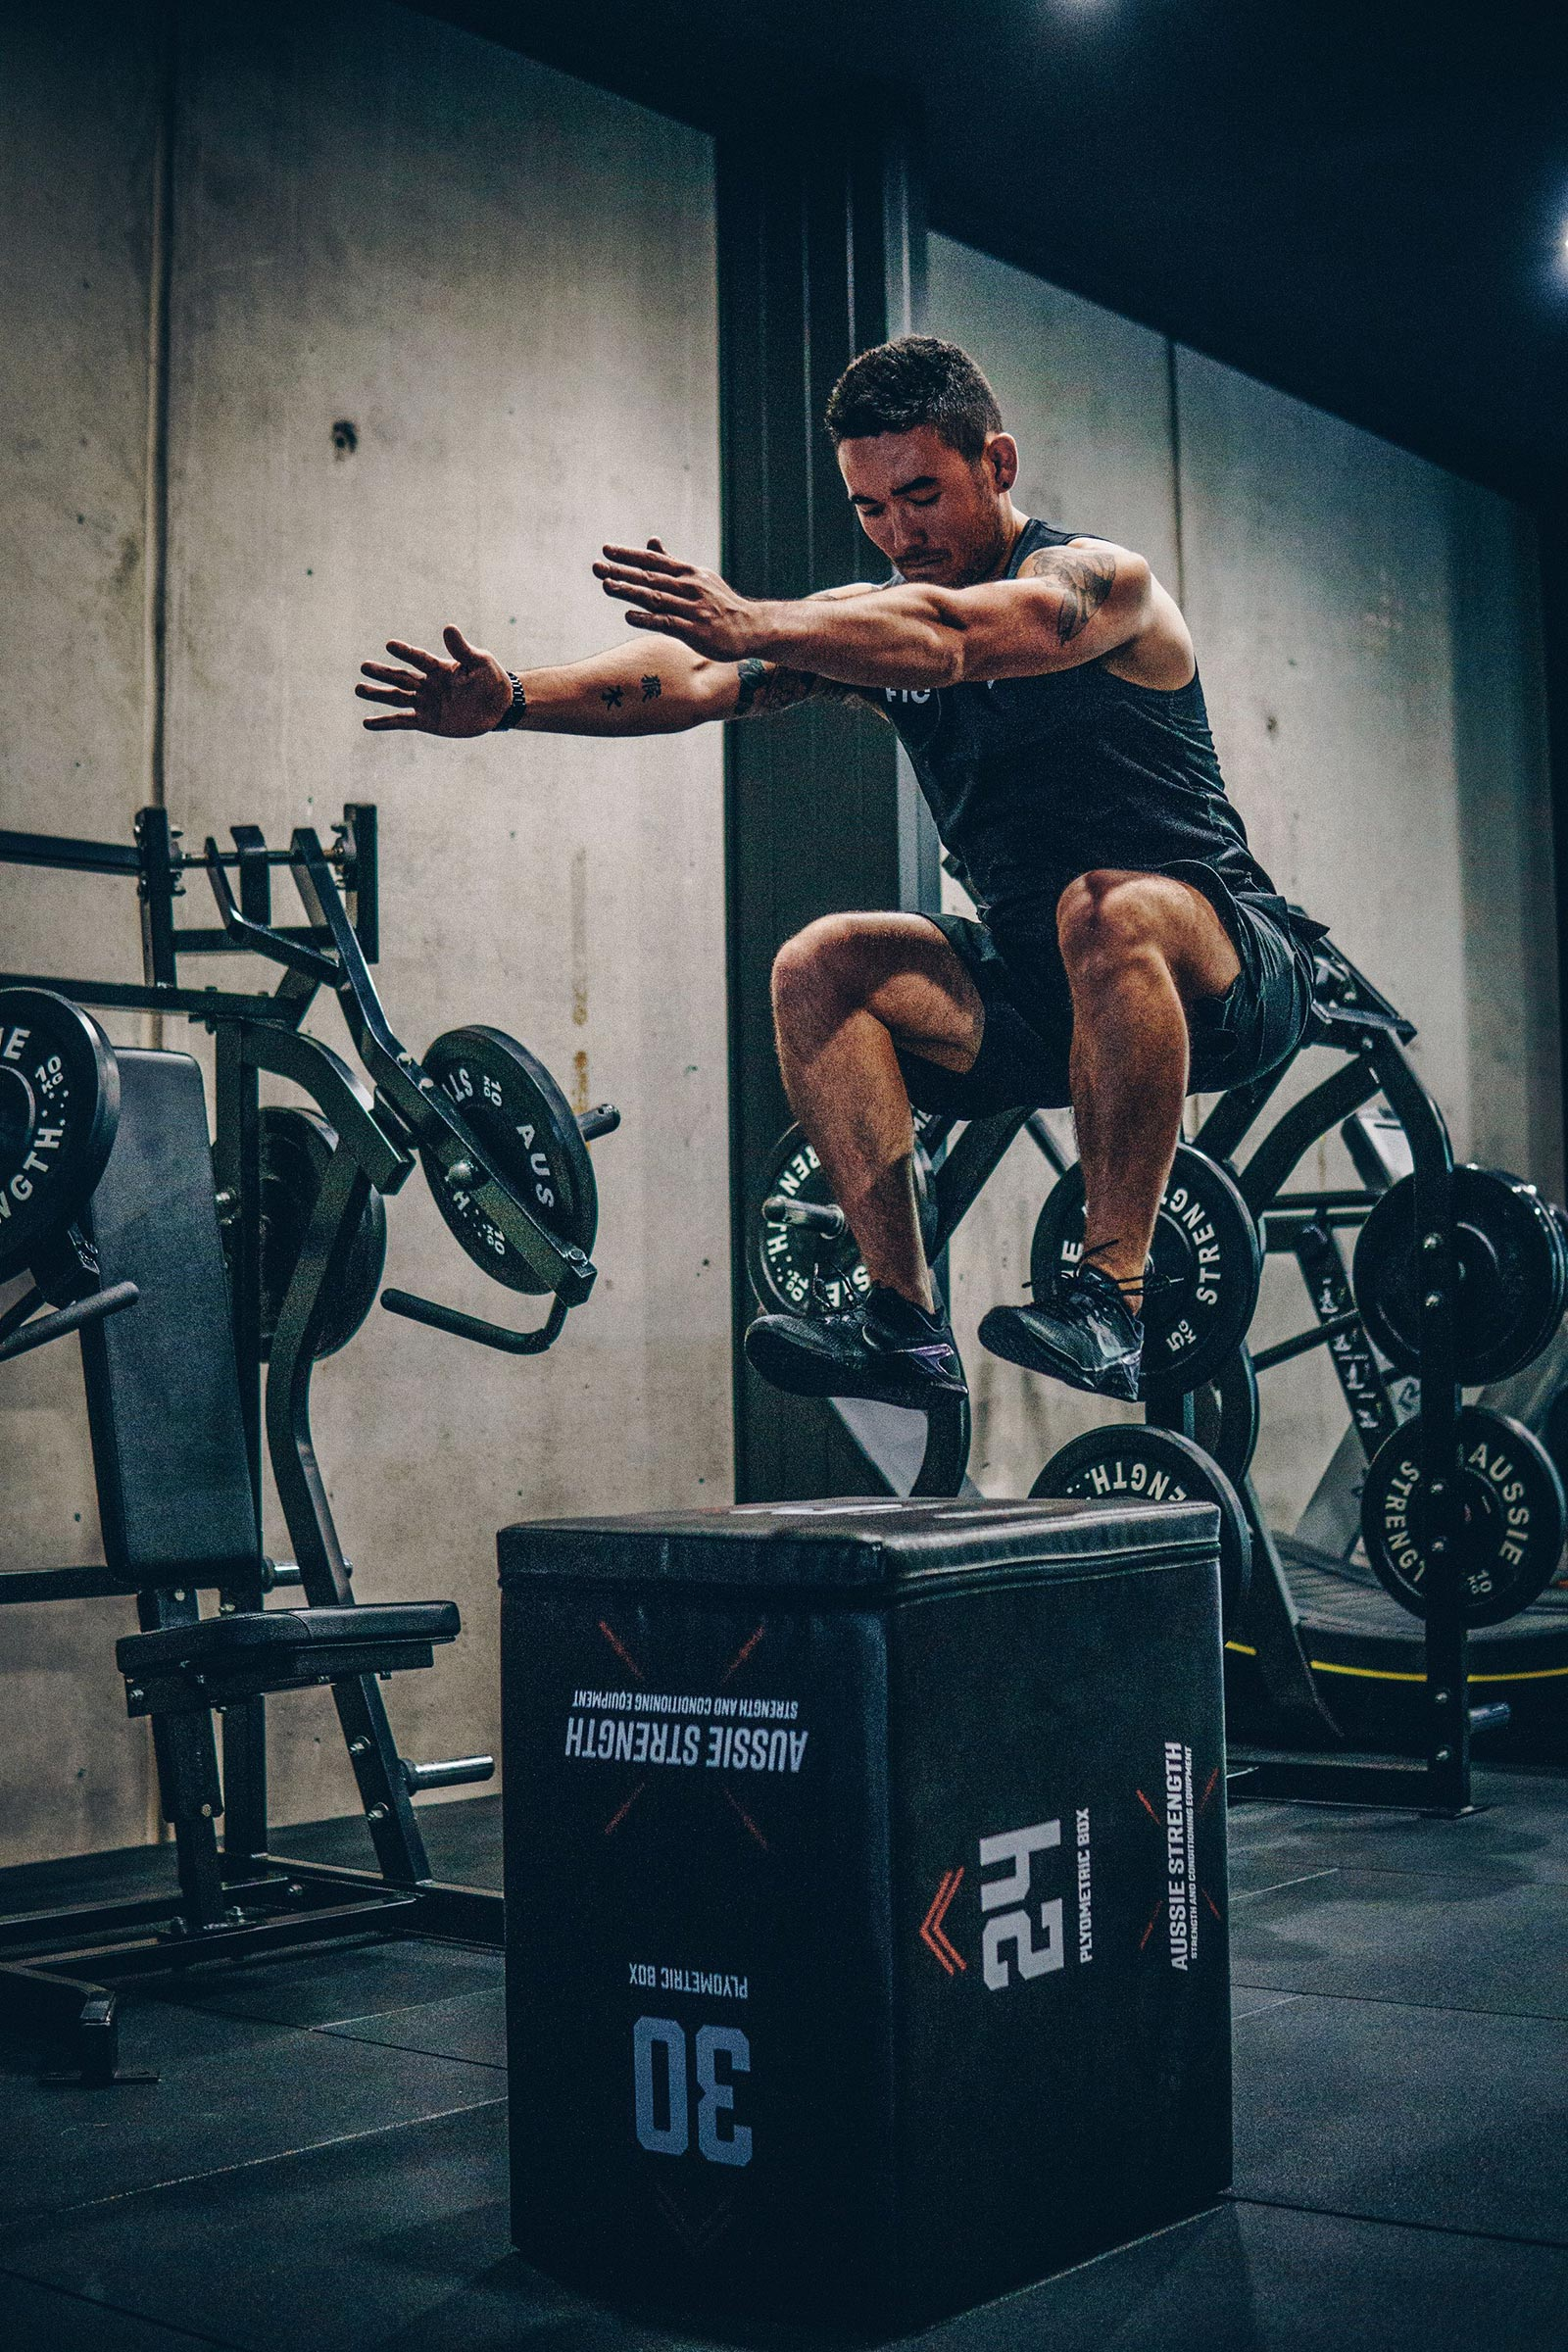 FTC gym photography by Squeeze Creative, Sydney, Surry Hills